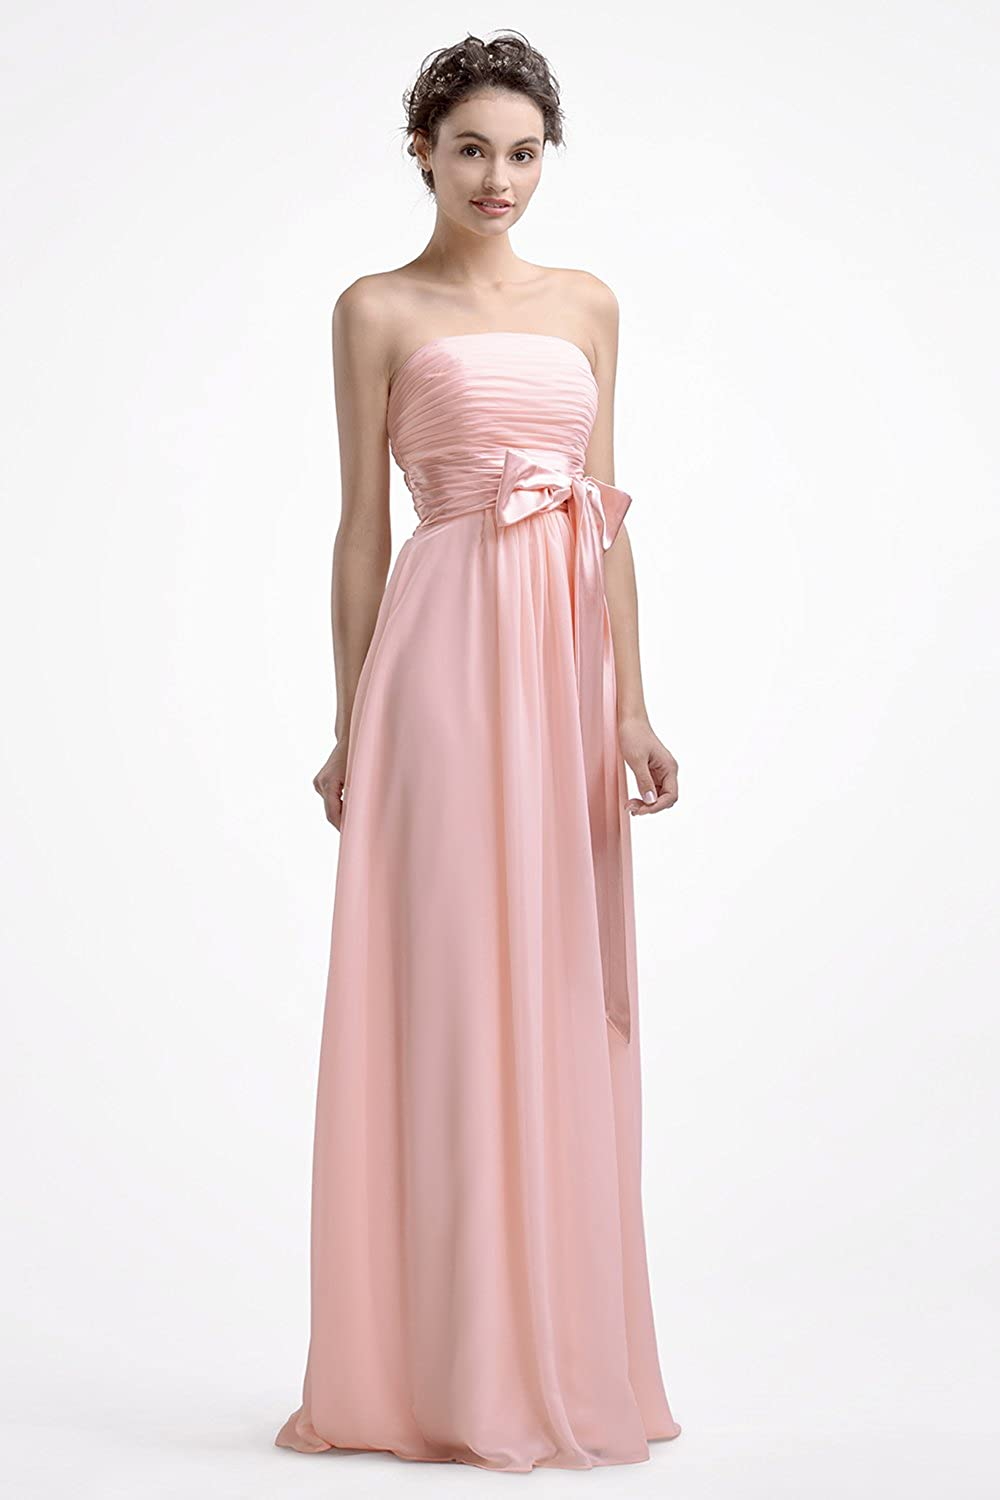 AWEI BRIDAL Bridesmaid Dress Long Evening Dresses Chiffon Designer Dresses at Amazon Womens Clothing store: